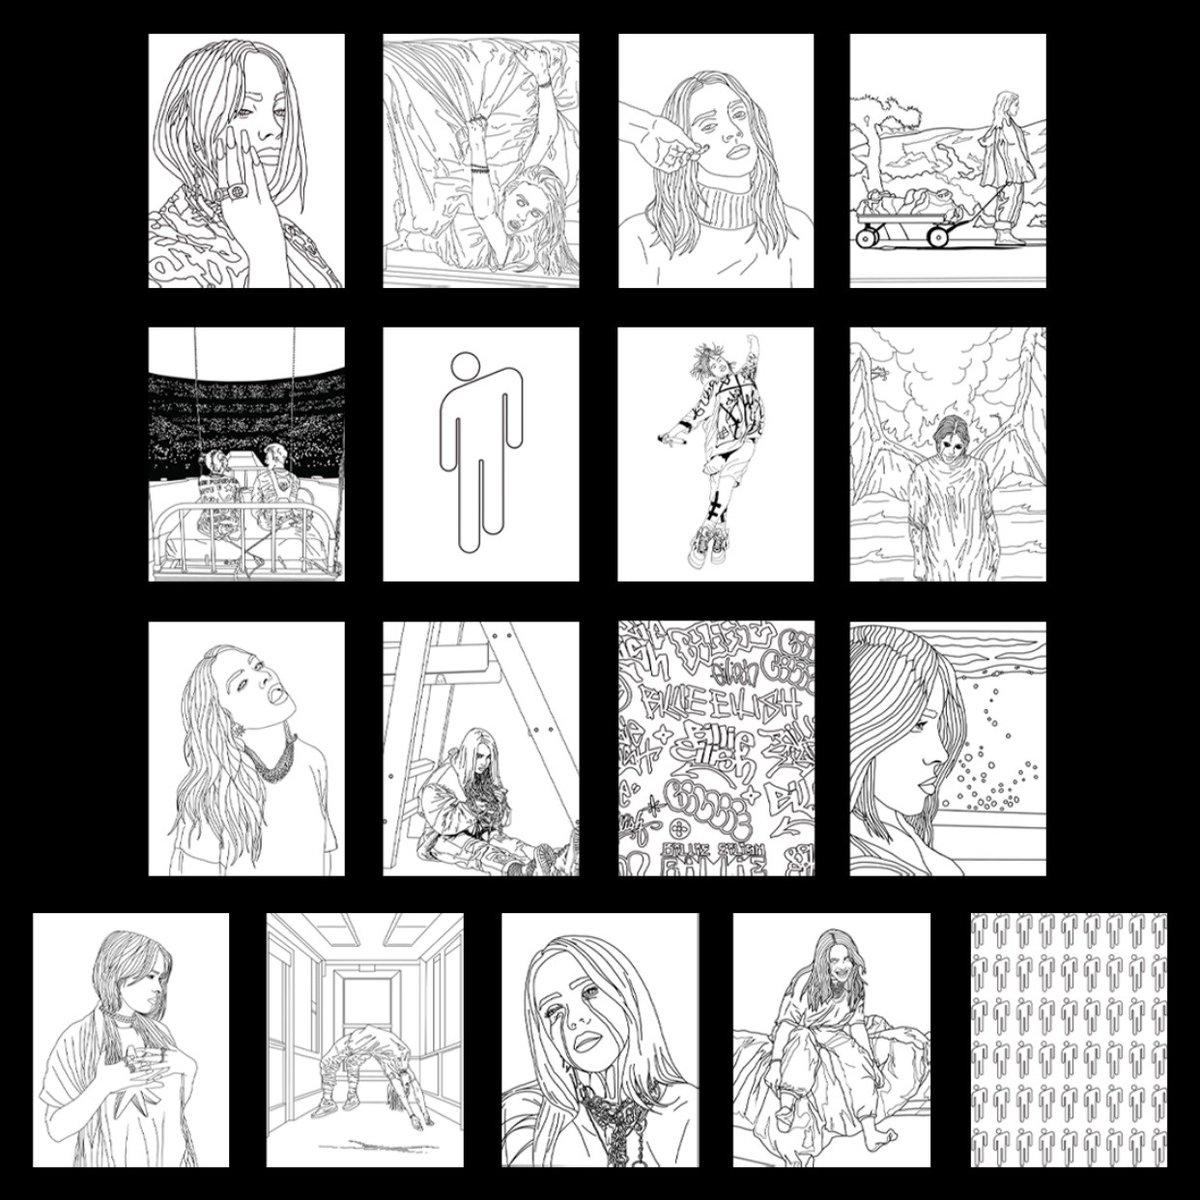 A digital version of the Billie Eilish Coloring Book is available now in Billie's official store. You can choose your own price with all proceeds going to @UNICEF. https://smarturl.it/BillieColoringBook…